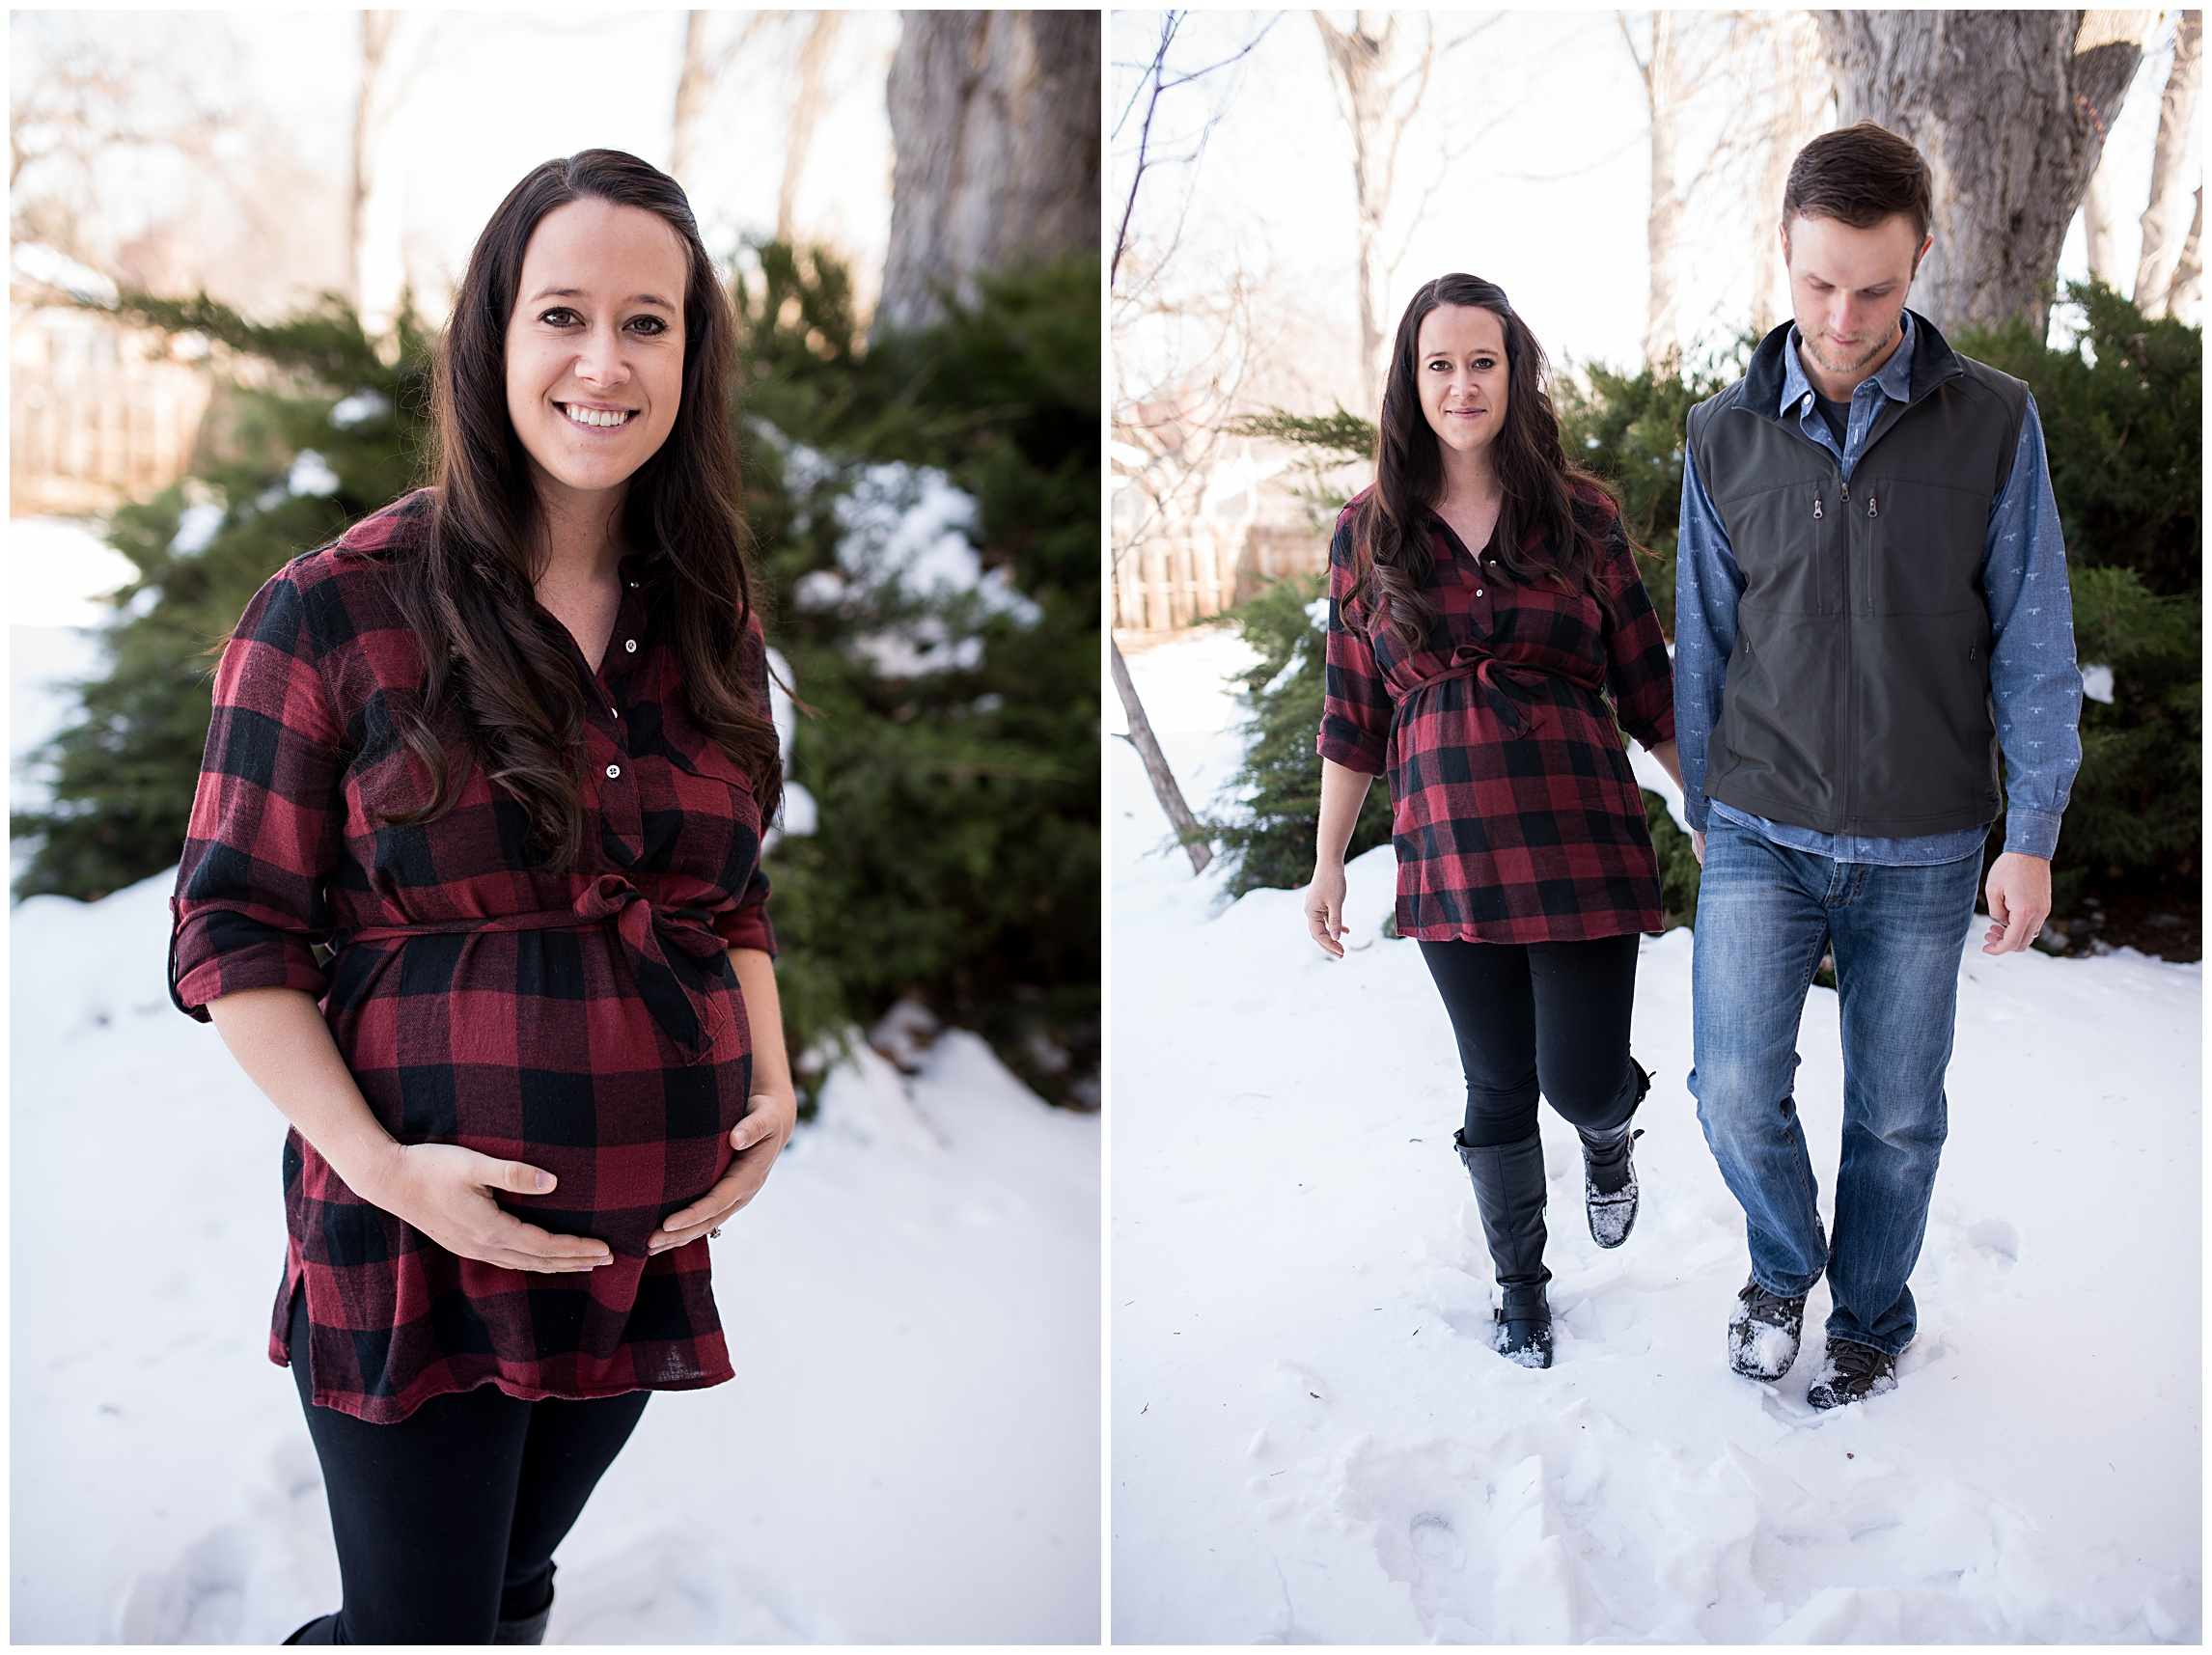 snow-flannel-mother-father-couple-baby-maternity-snowy-northern-colorado-rocky-mountains-meet-the-plains-look-sonjakphotography-film-sonja-k-photography-bump